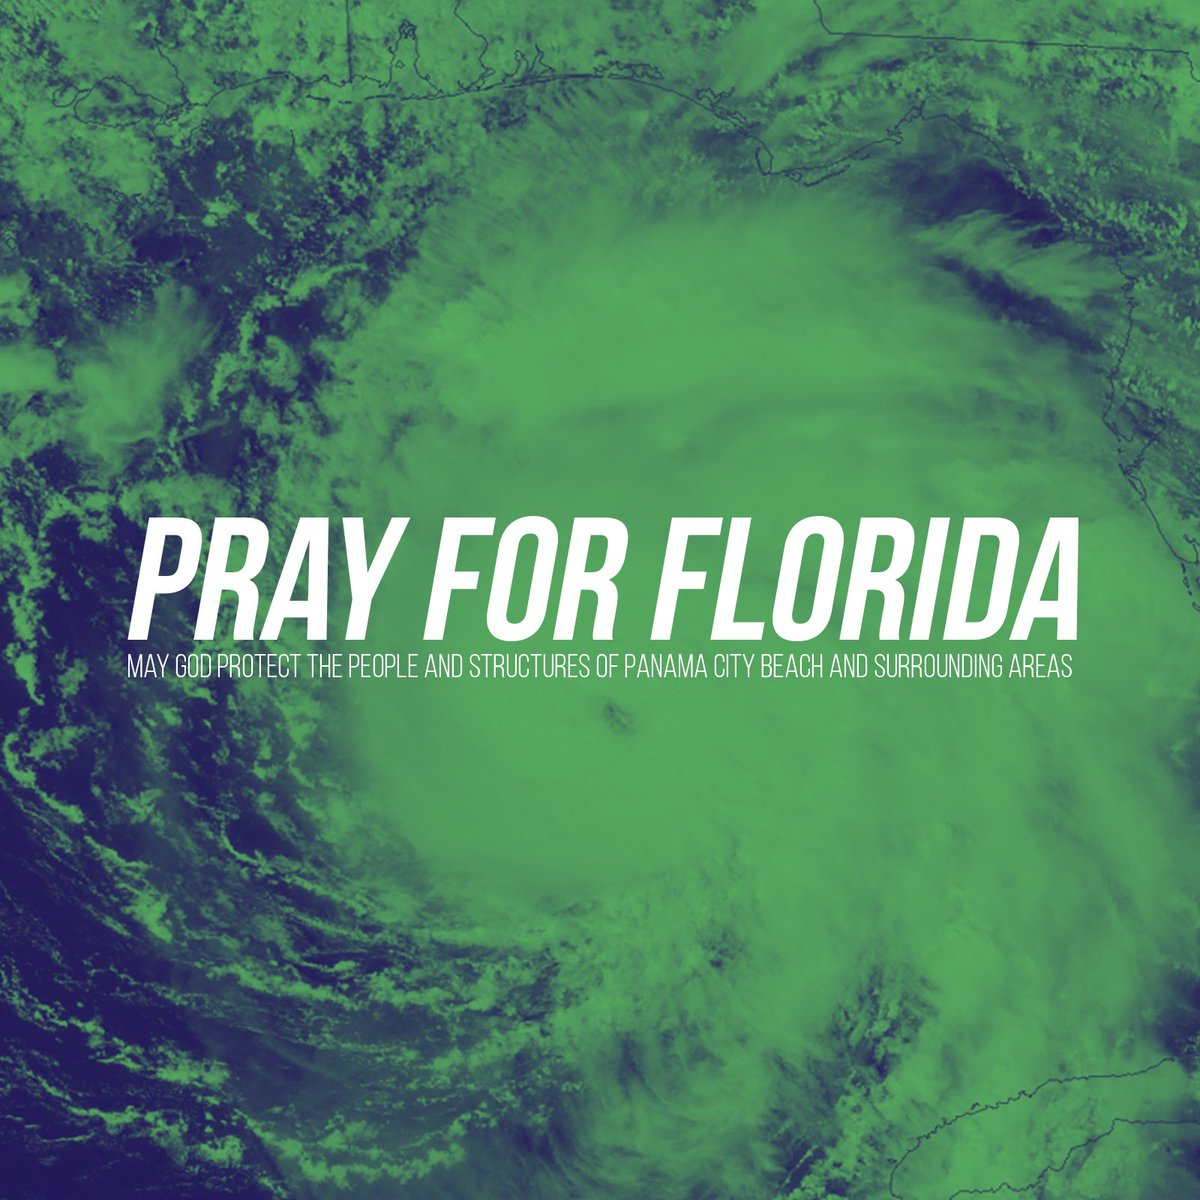 Our hearts our with our Panama City Beach Campus, and the entire community surrounding. We are praying for your safety even now. #PrayForFlorida <br>http://pic.twitter.com/FbP1m1K0YP